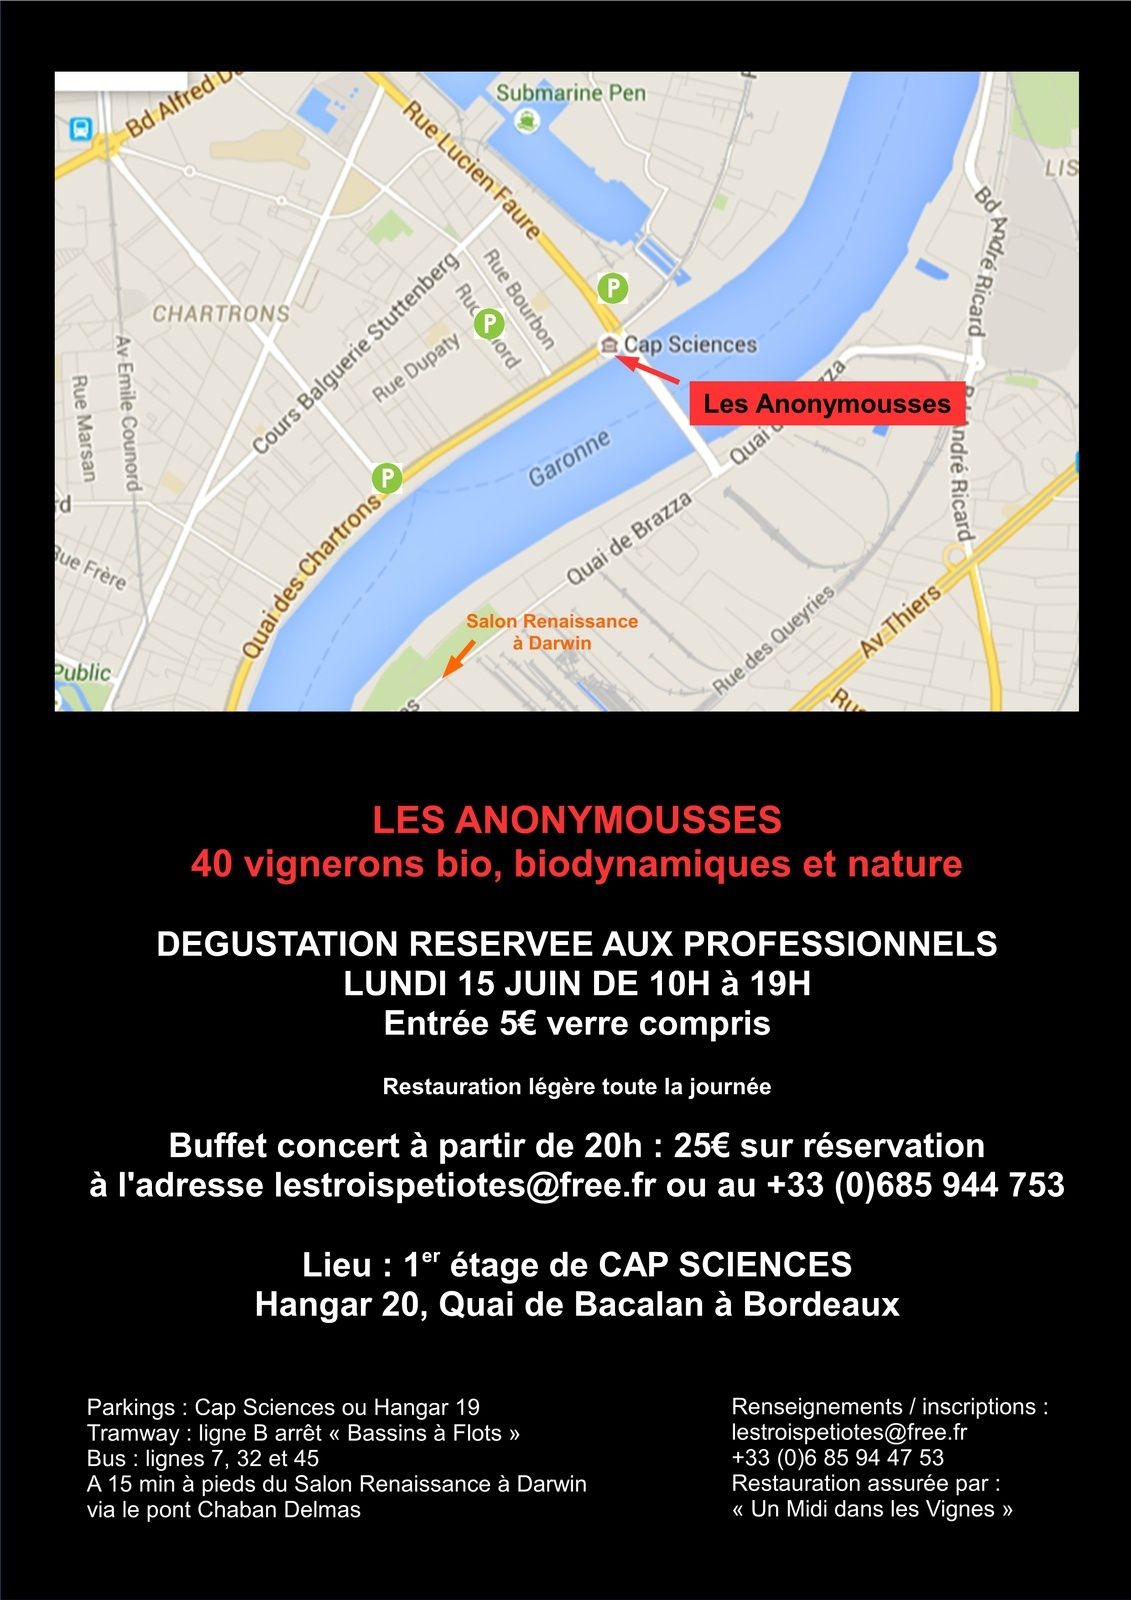 Les Anonymousses 2015 lundi 15 juin à Cap Sciences Bordeaux